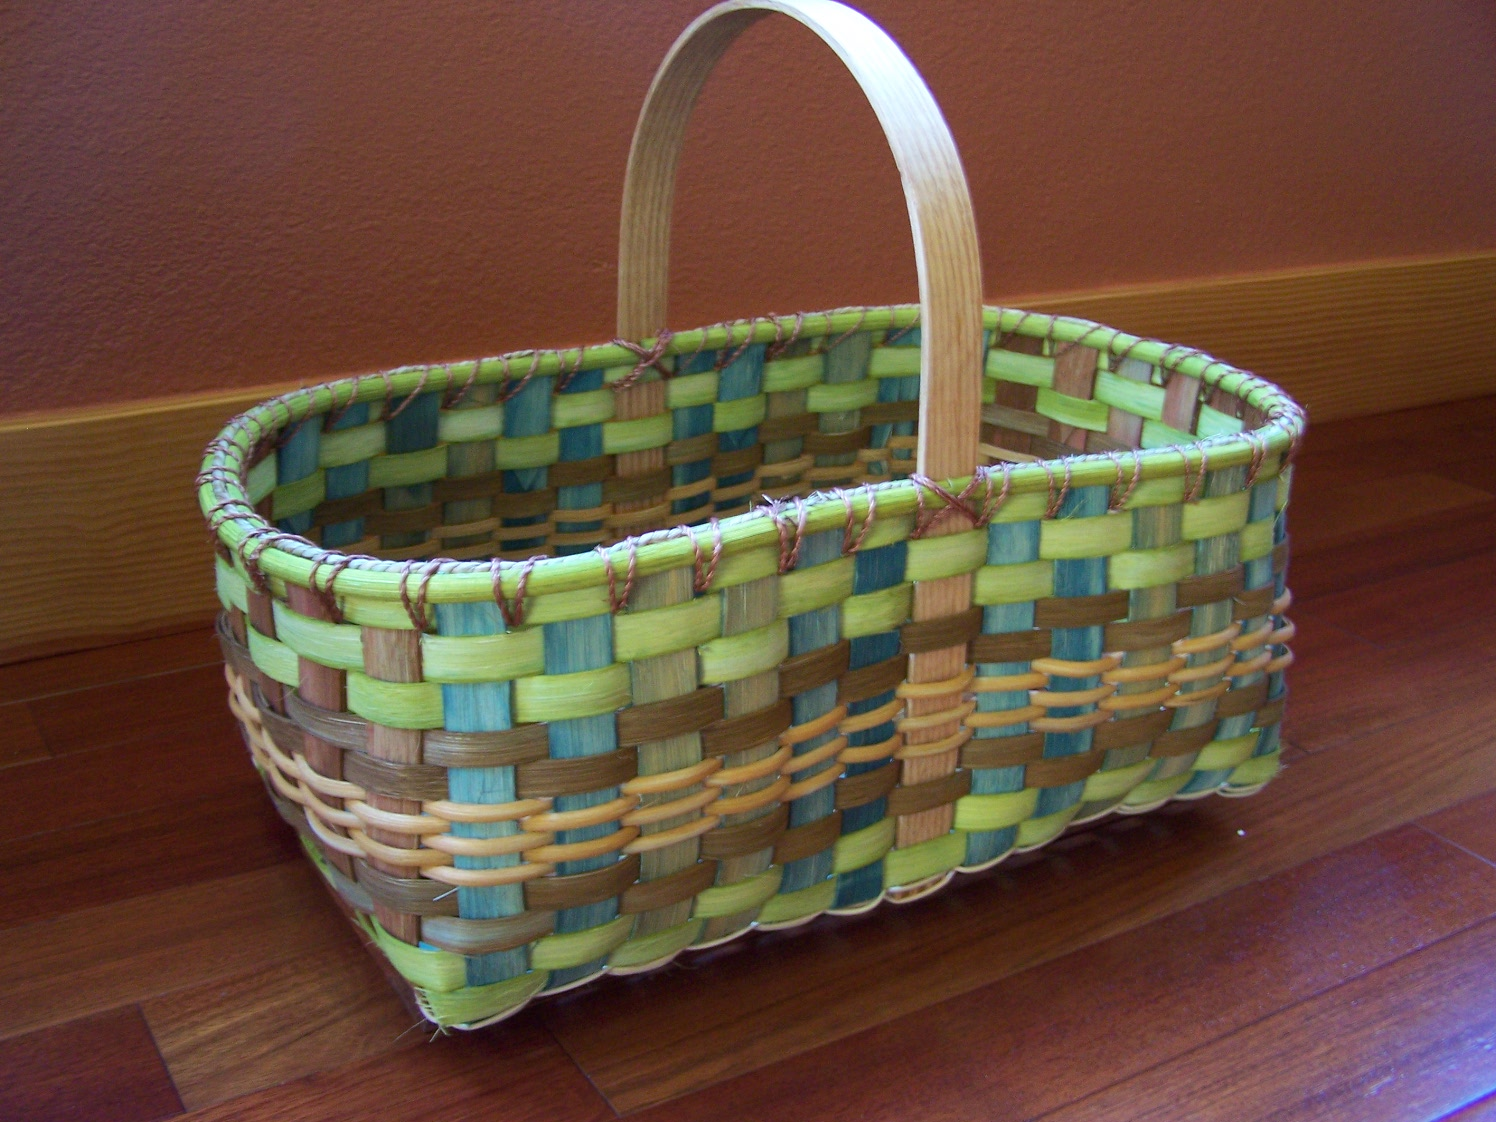 Light Green Market Basket